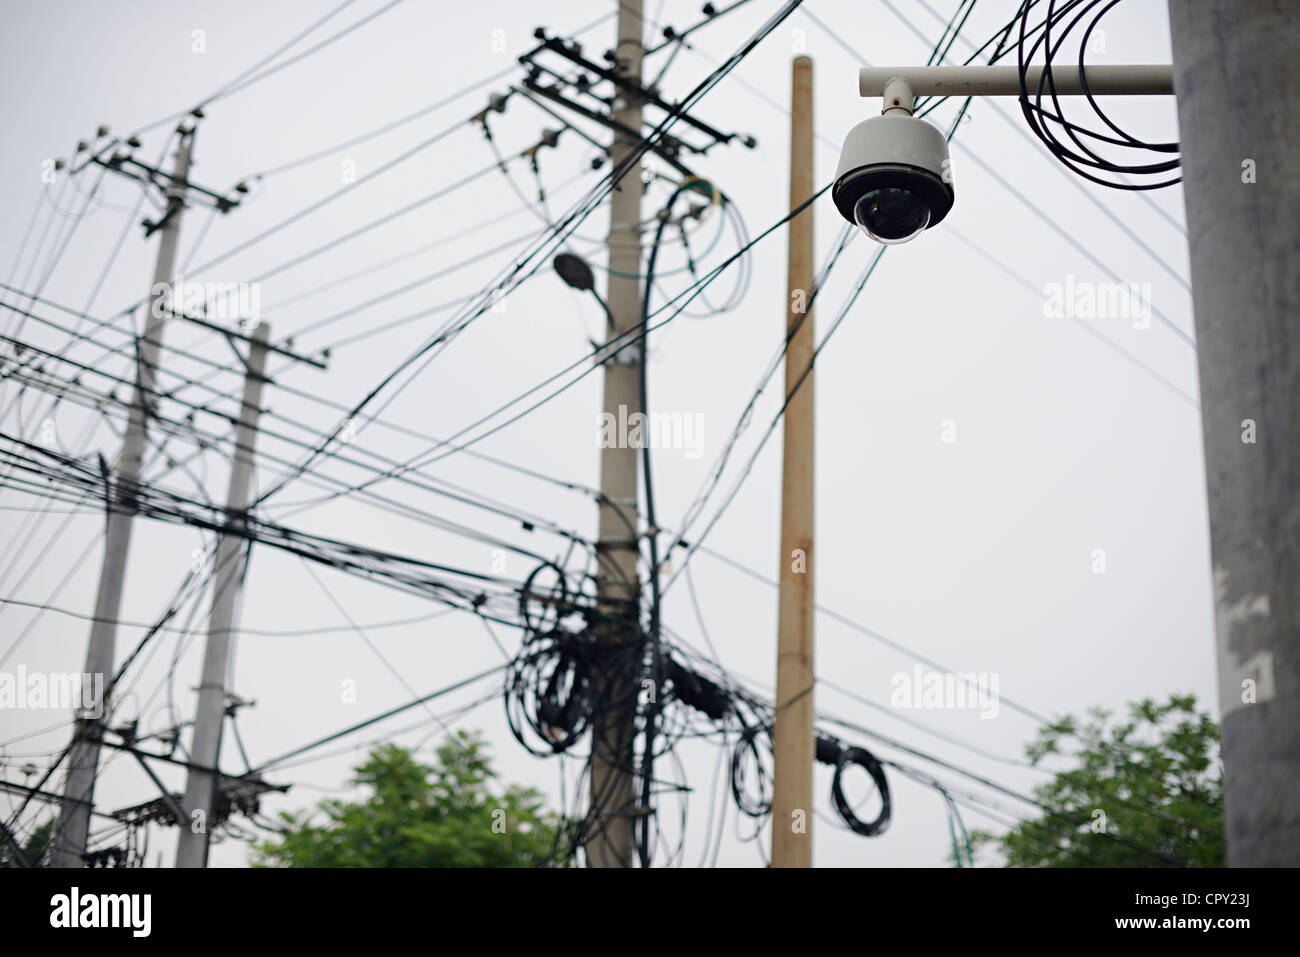 Surveillance Camera China Stock Photos Wiring Cctv Wires Cables Beijing Hutong Image